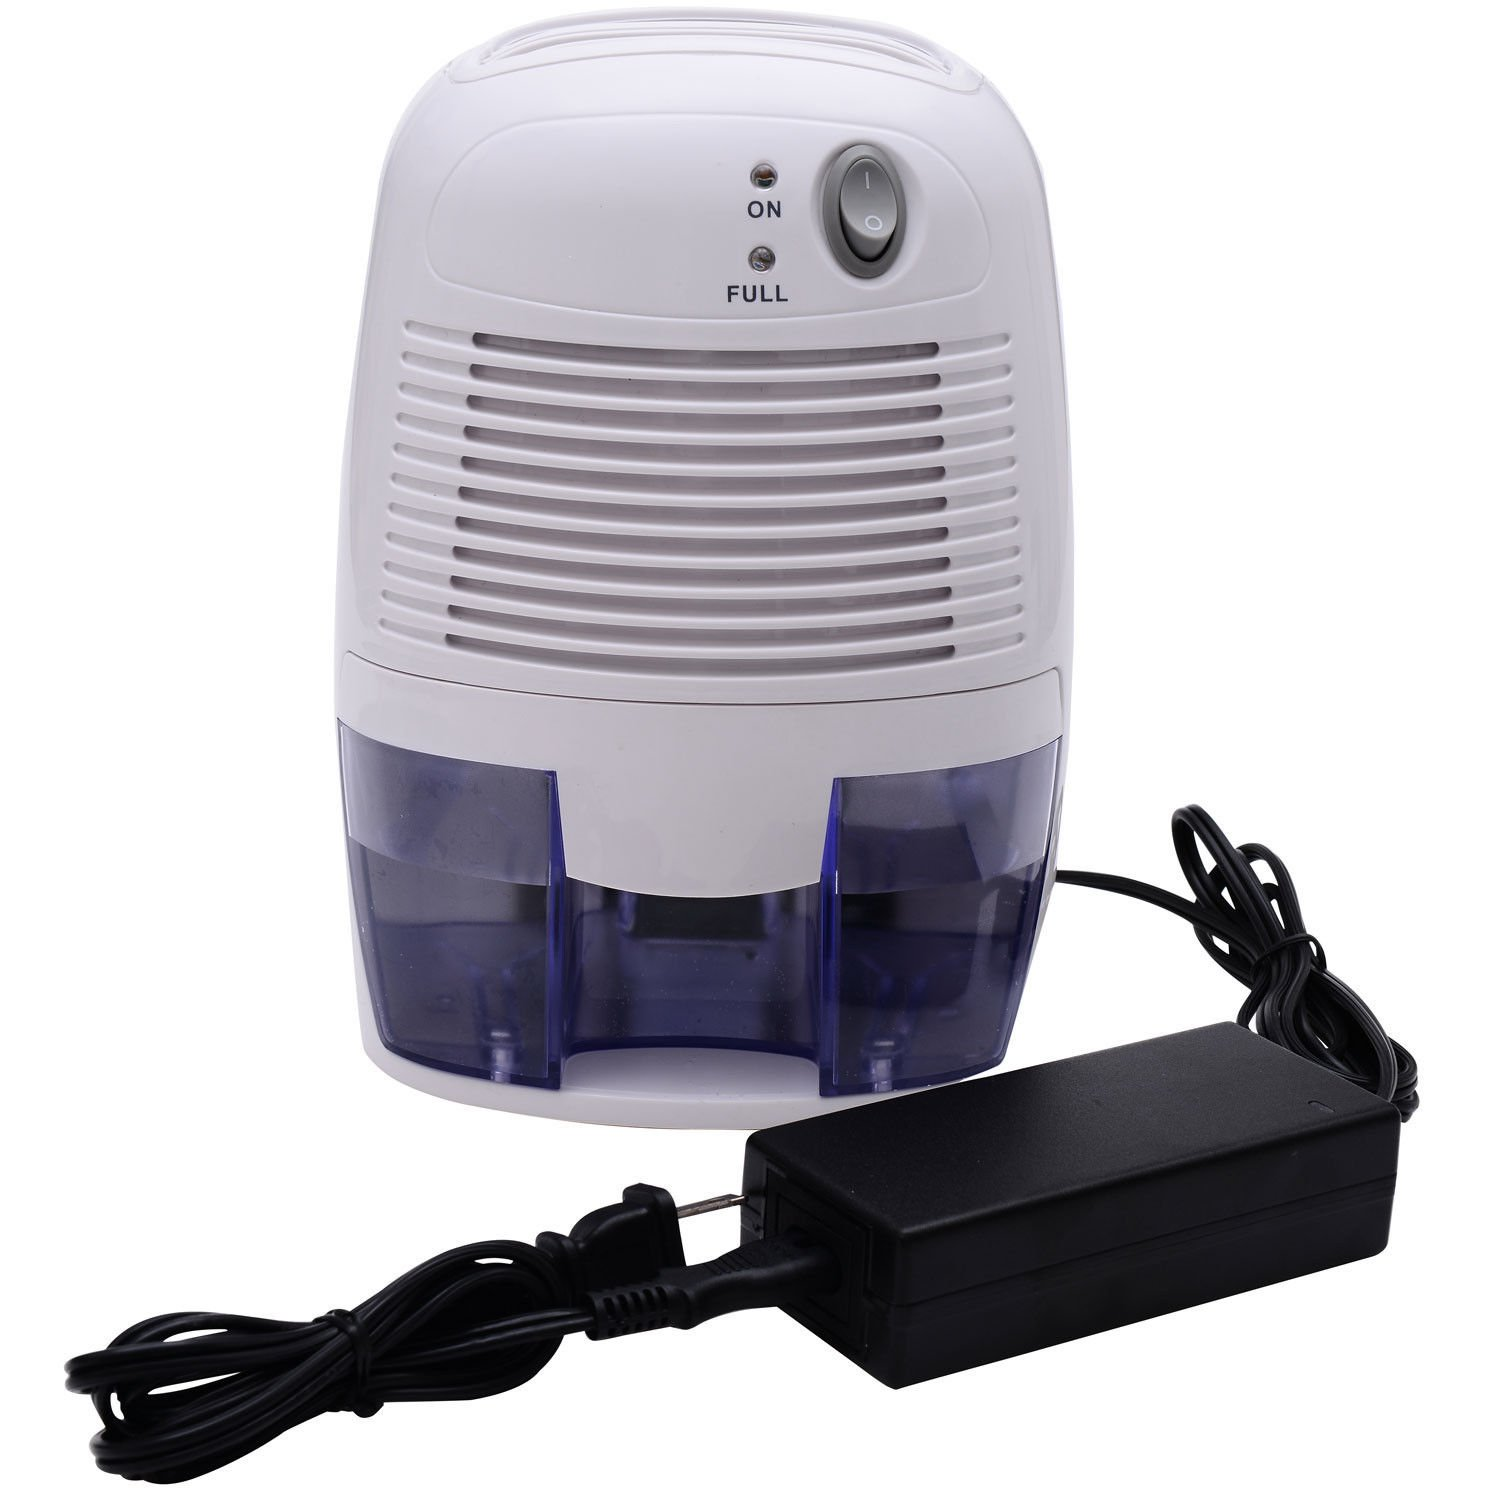 Mini Room Dehumidifier Electric Air Moisture Drying Absorber ATL250 #454262